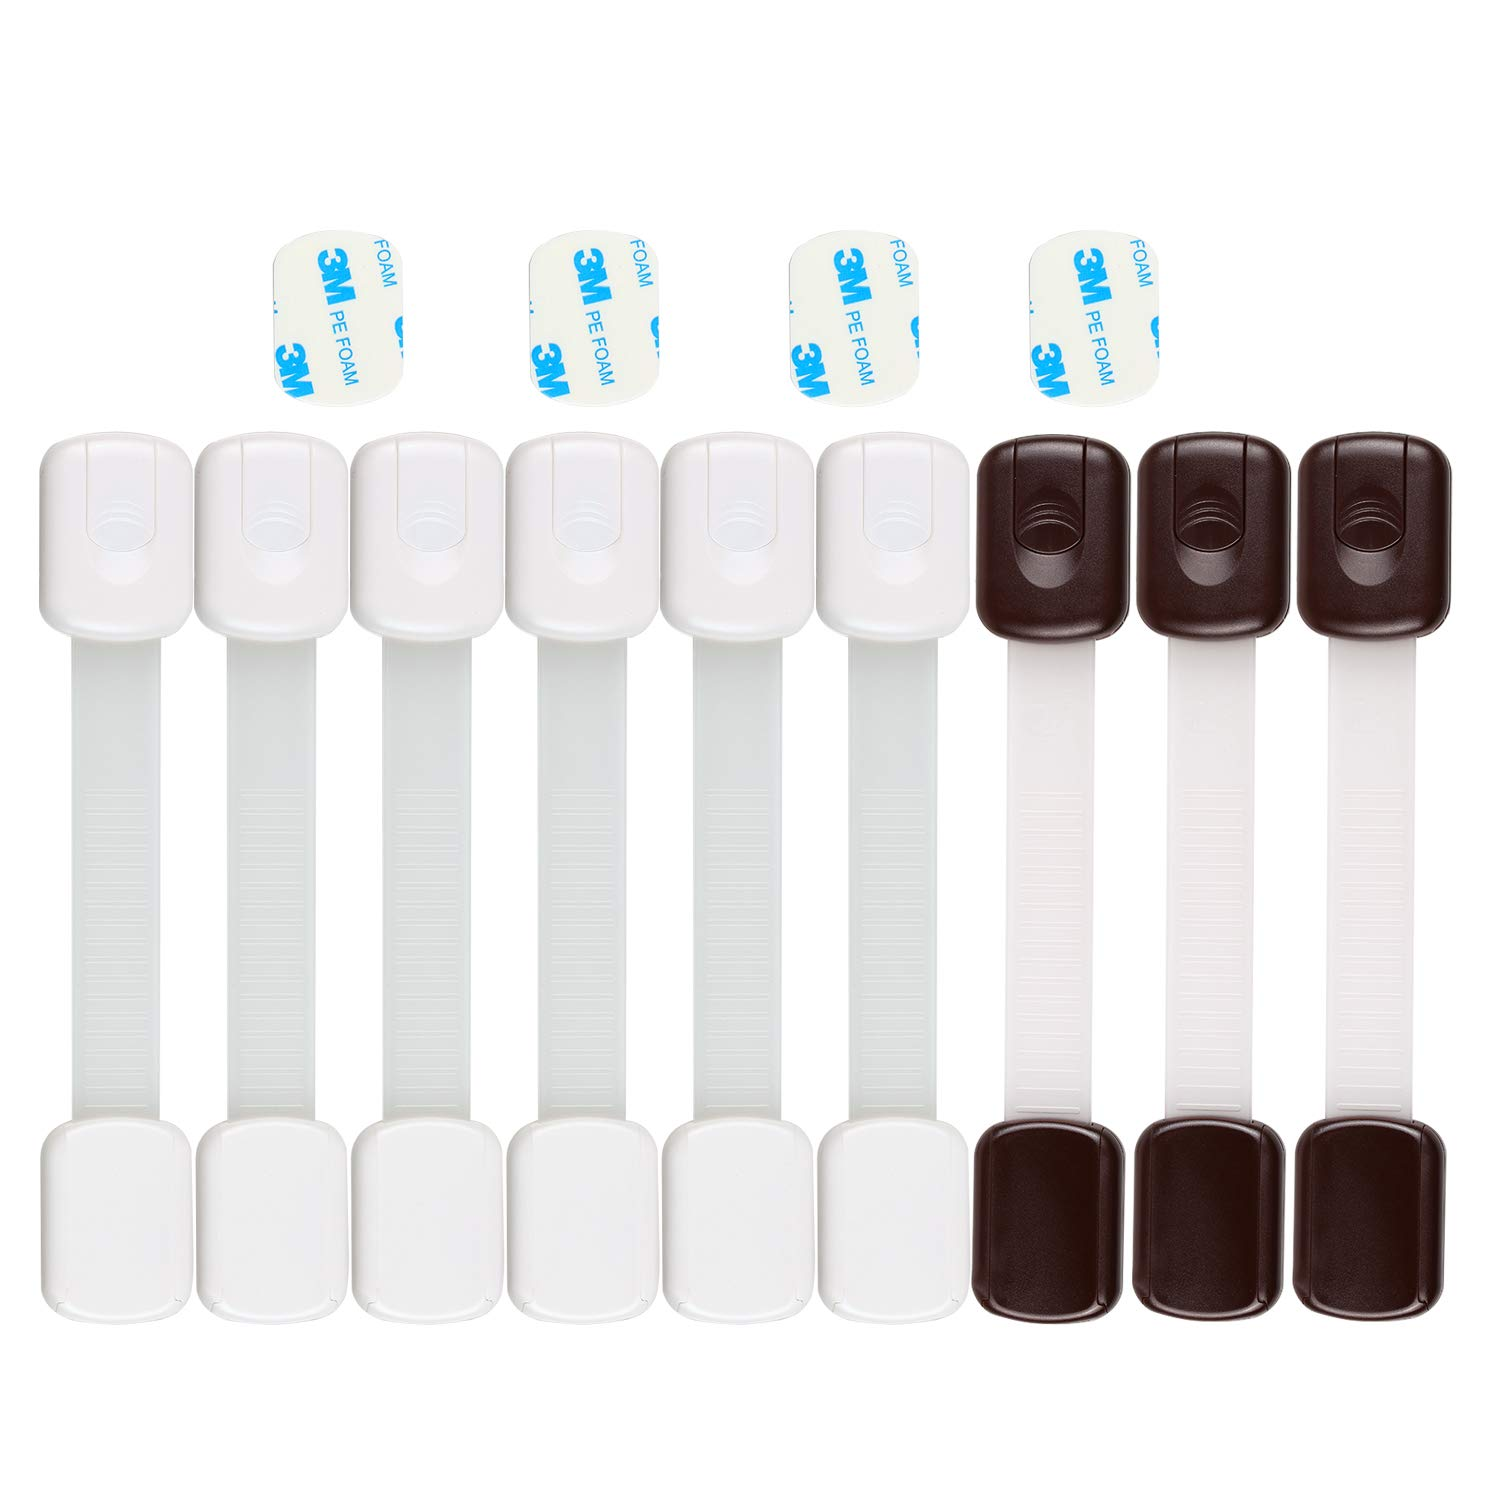 Child Safety Lock Baby Cabinet Proof Lock for Drawers Appliances Toilet Fridge, Oven 3M Adhesive No Tools Required Adjustable White and Chocolate 9 Pcs